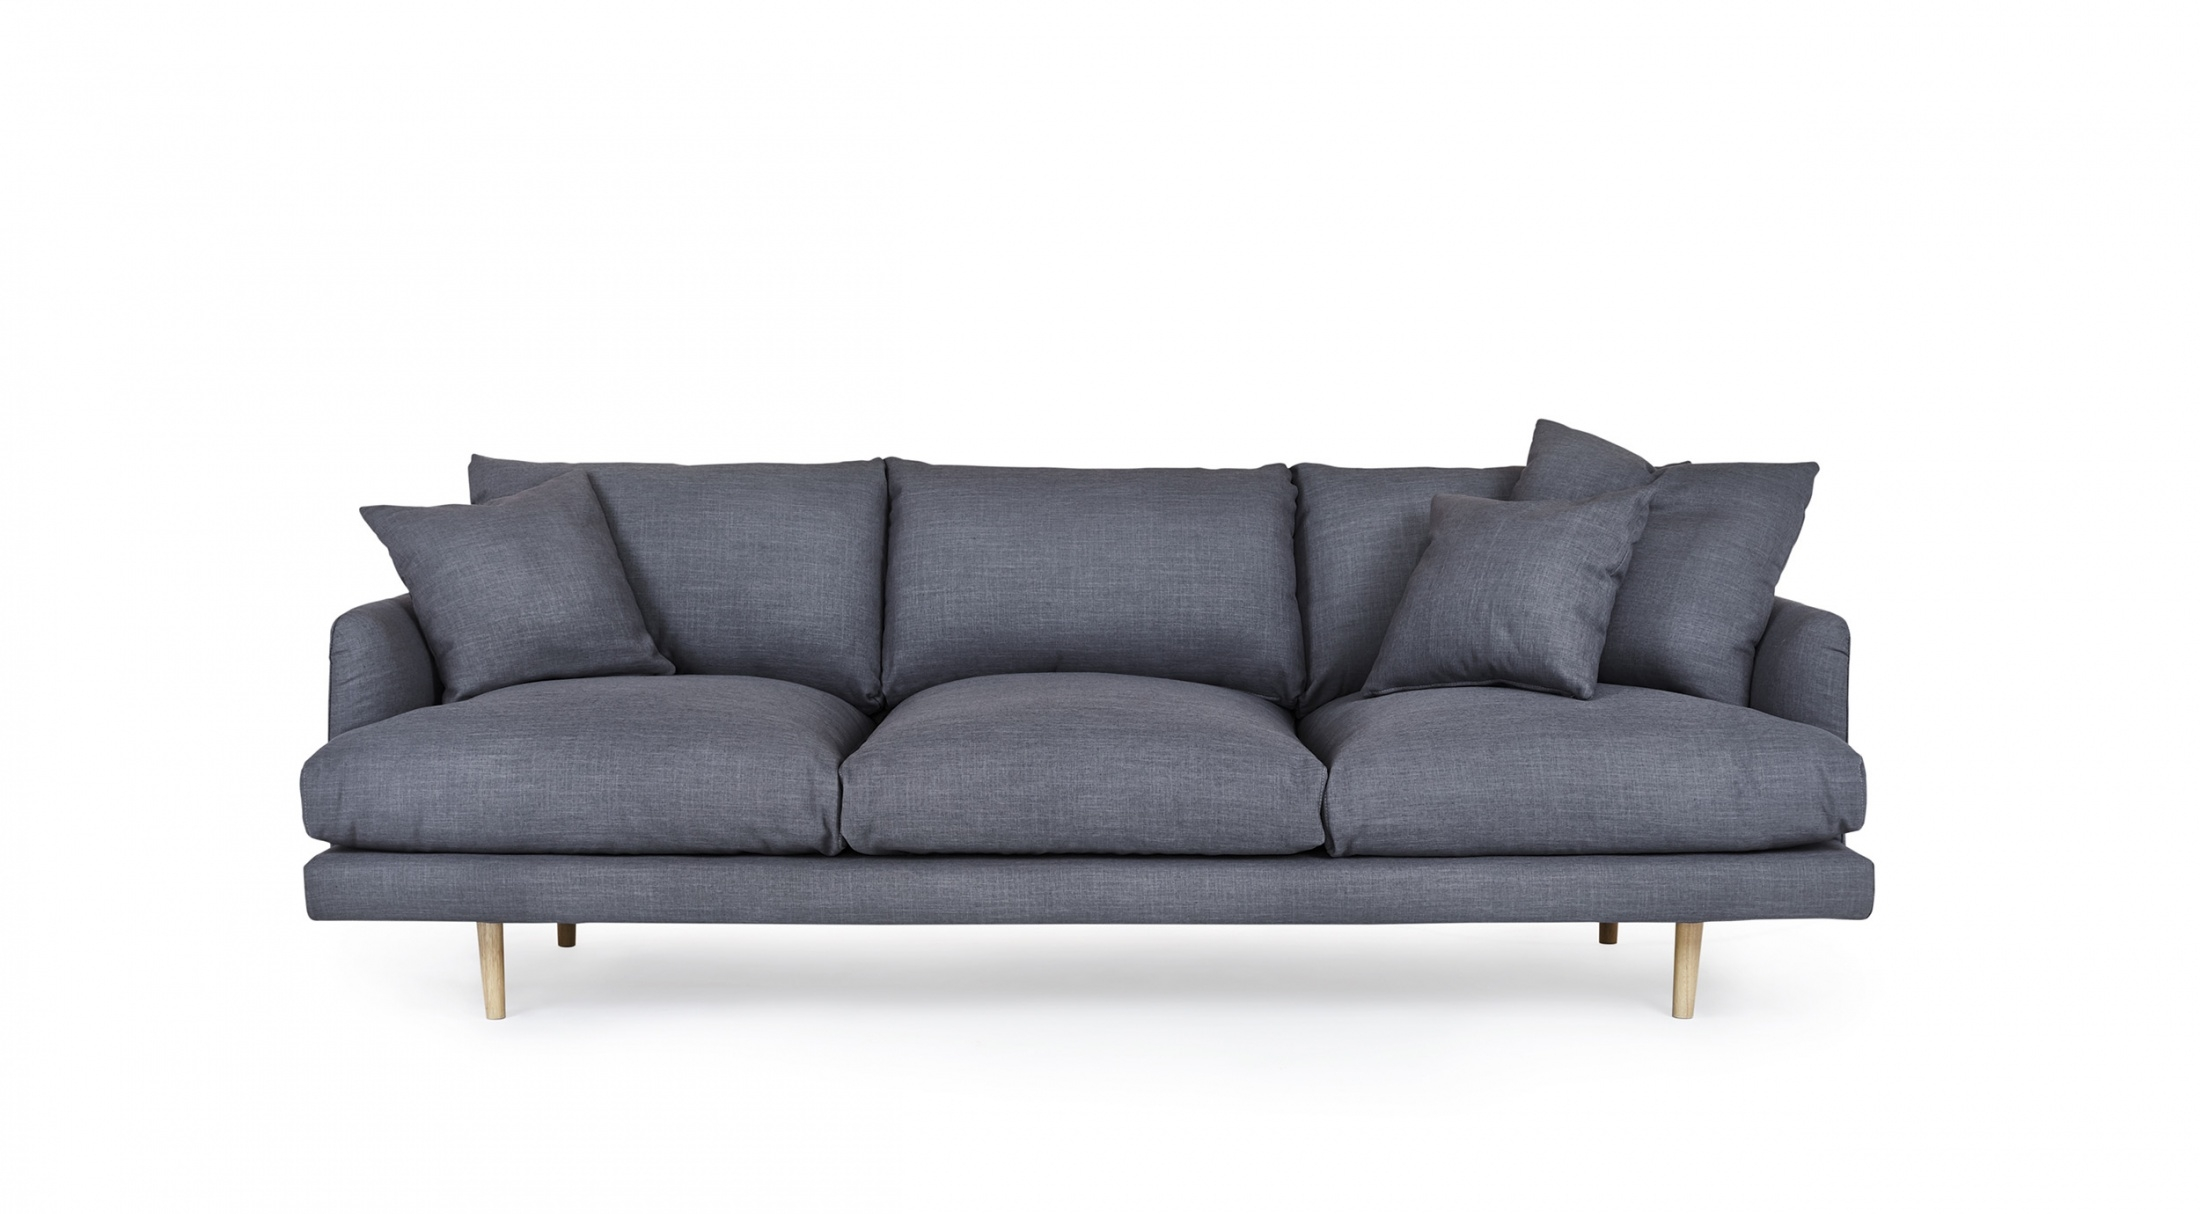 Hampton 4 Seat Sofa Loungelovers Pertaining To 4 Seater Couch (Image 12 of 15)